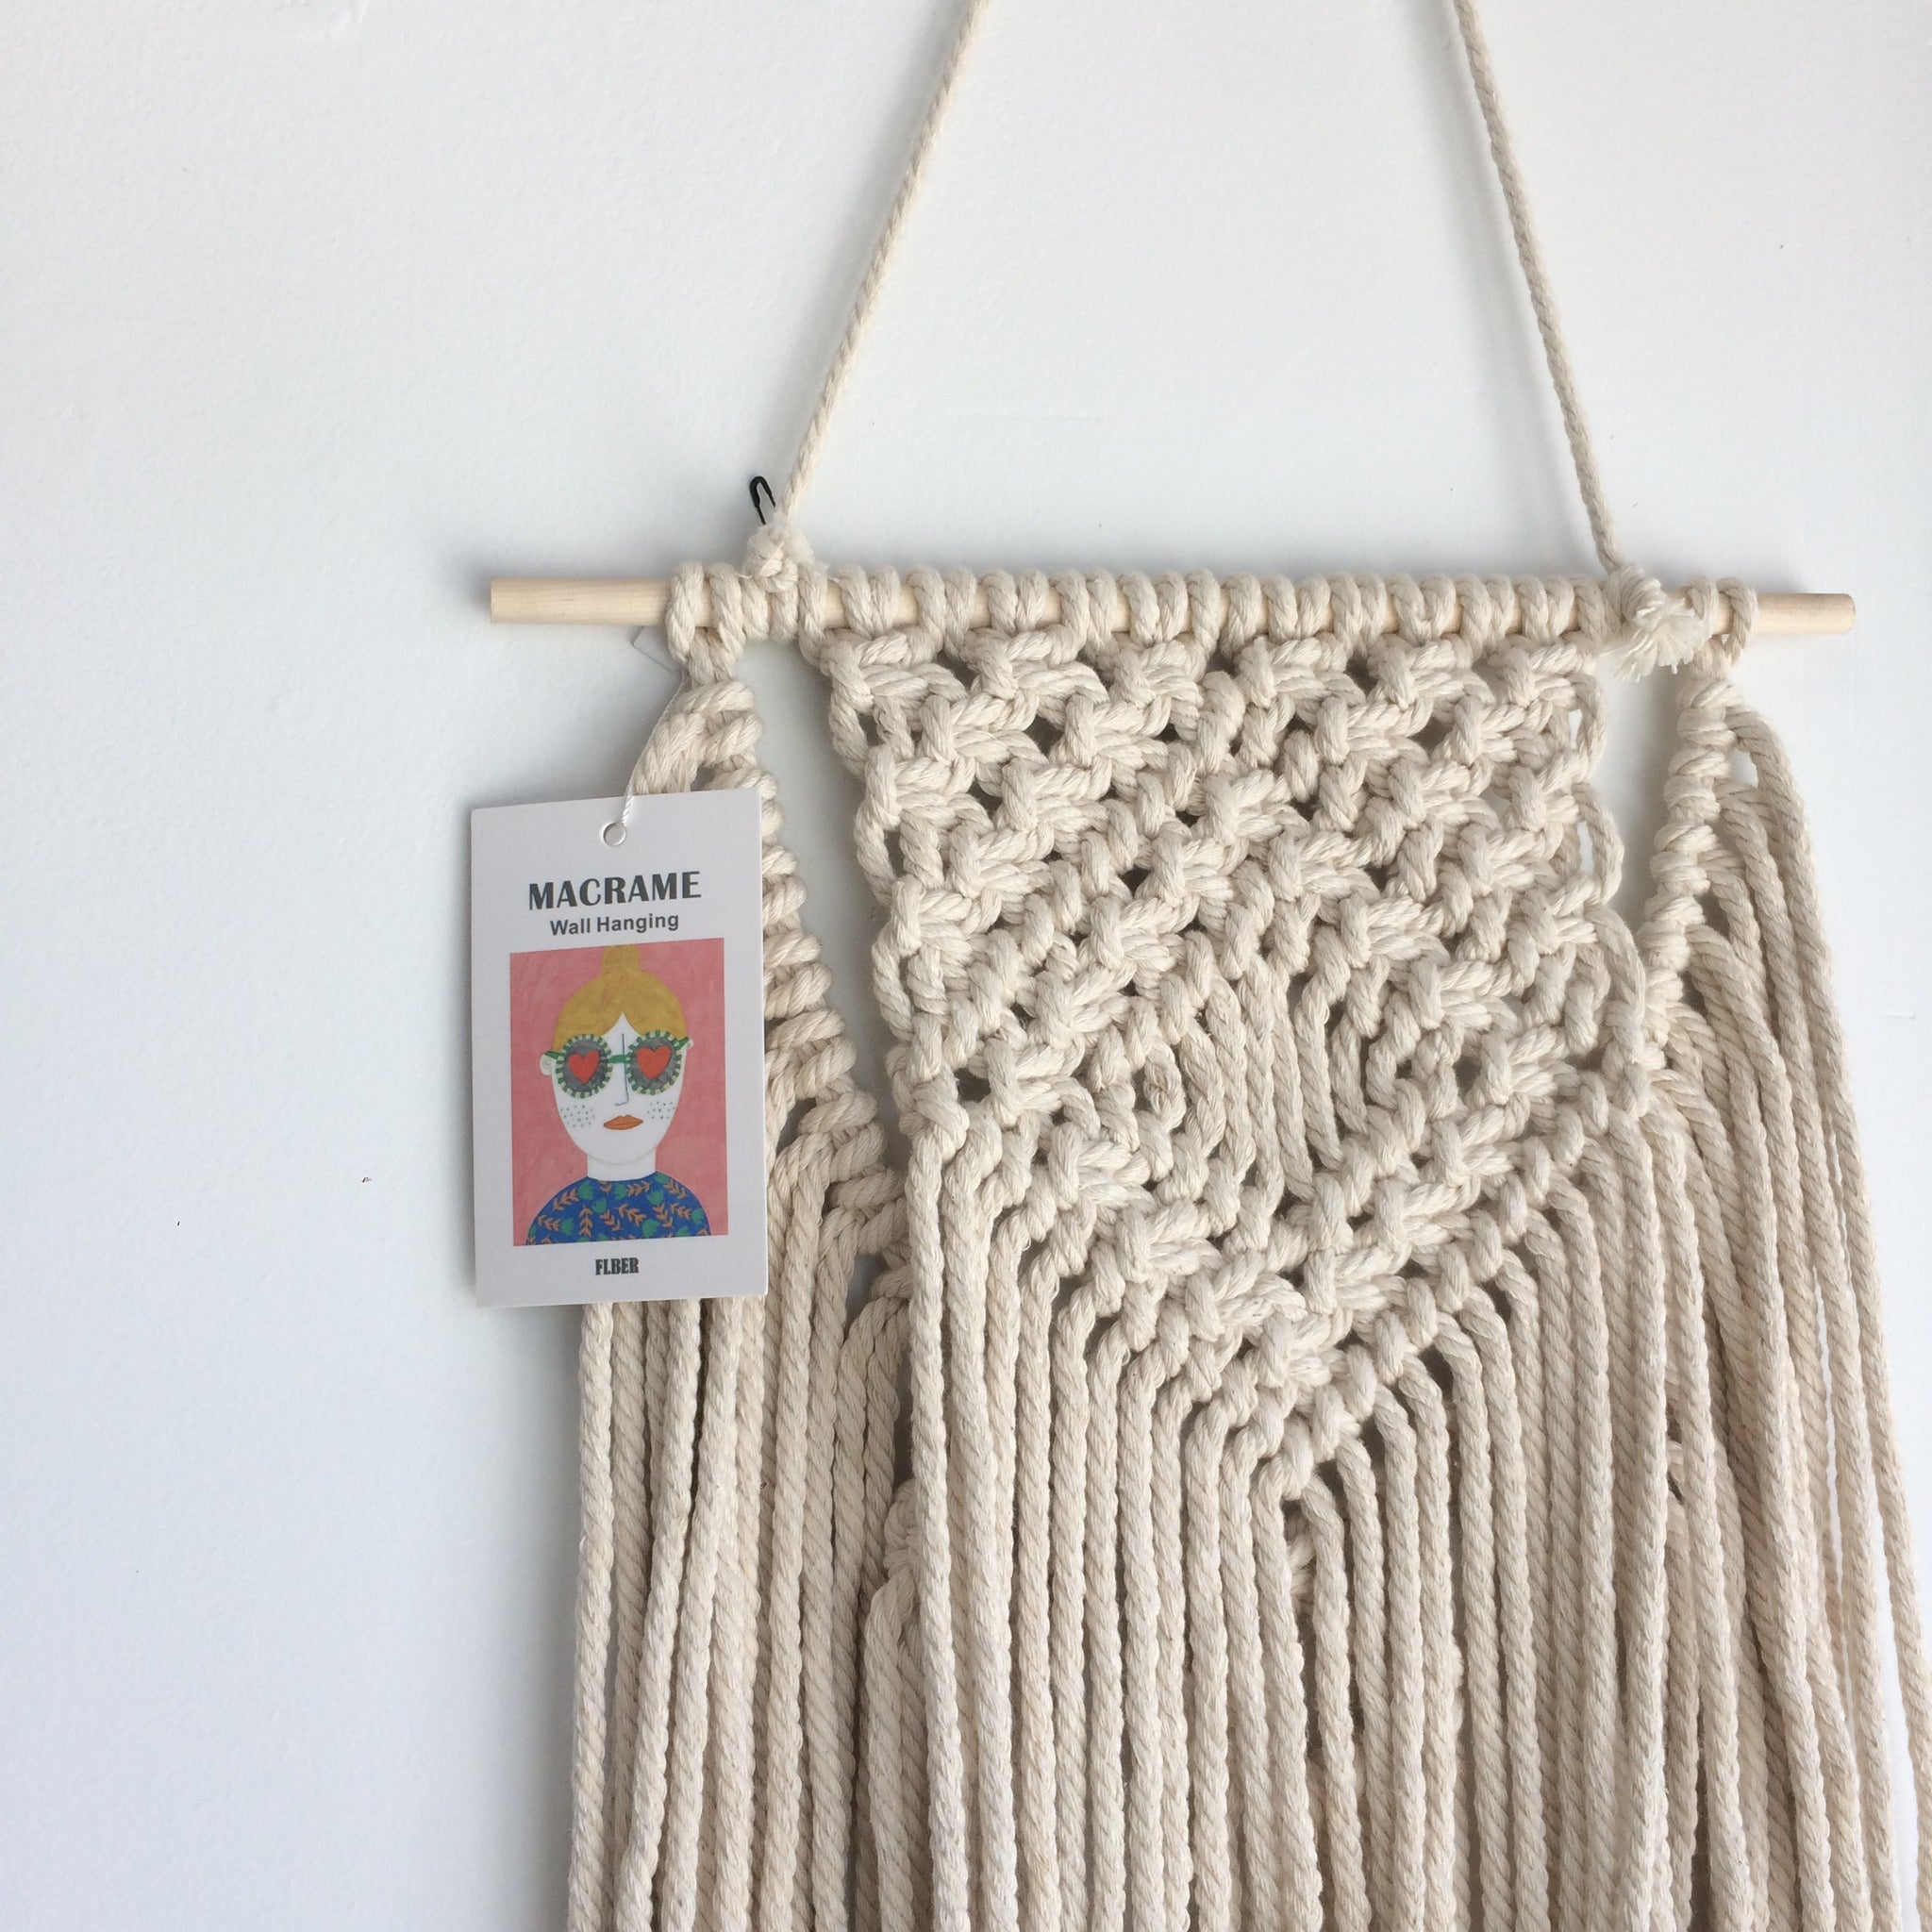 Macrame Wall Hanging by FLBER